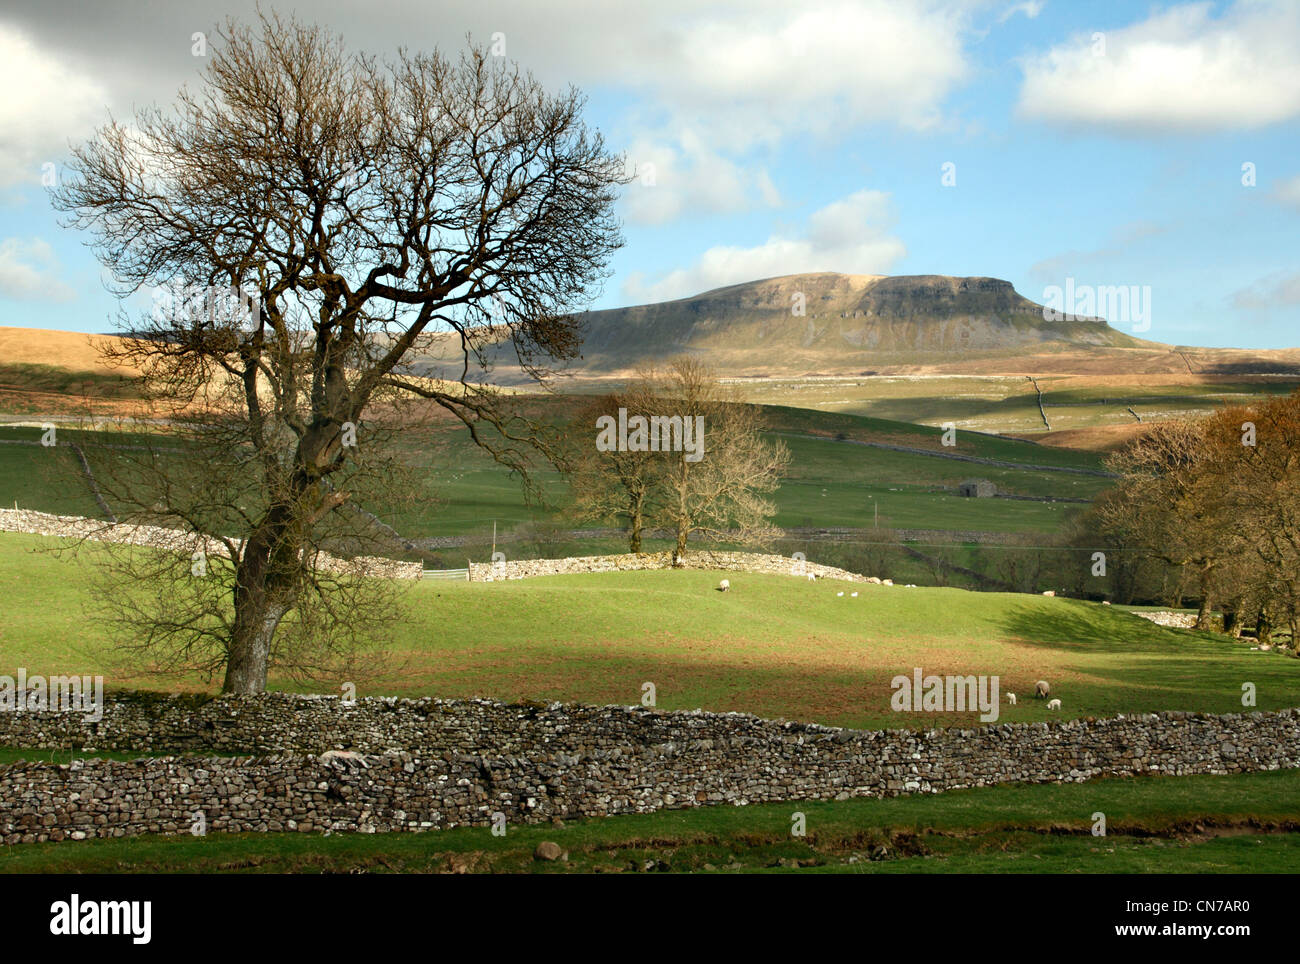 Pen-Y-Ghent mountain seen from Horton in Ribblesdale in the North Yorkshire Dales. - Stock Image